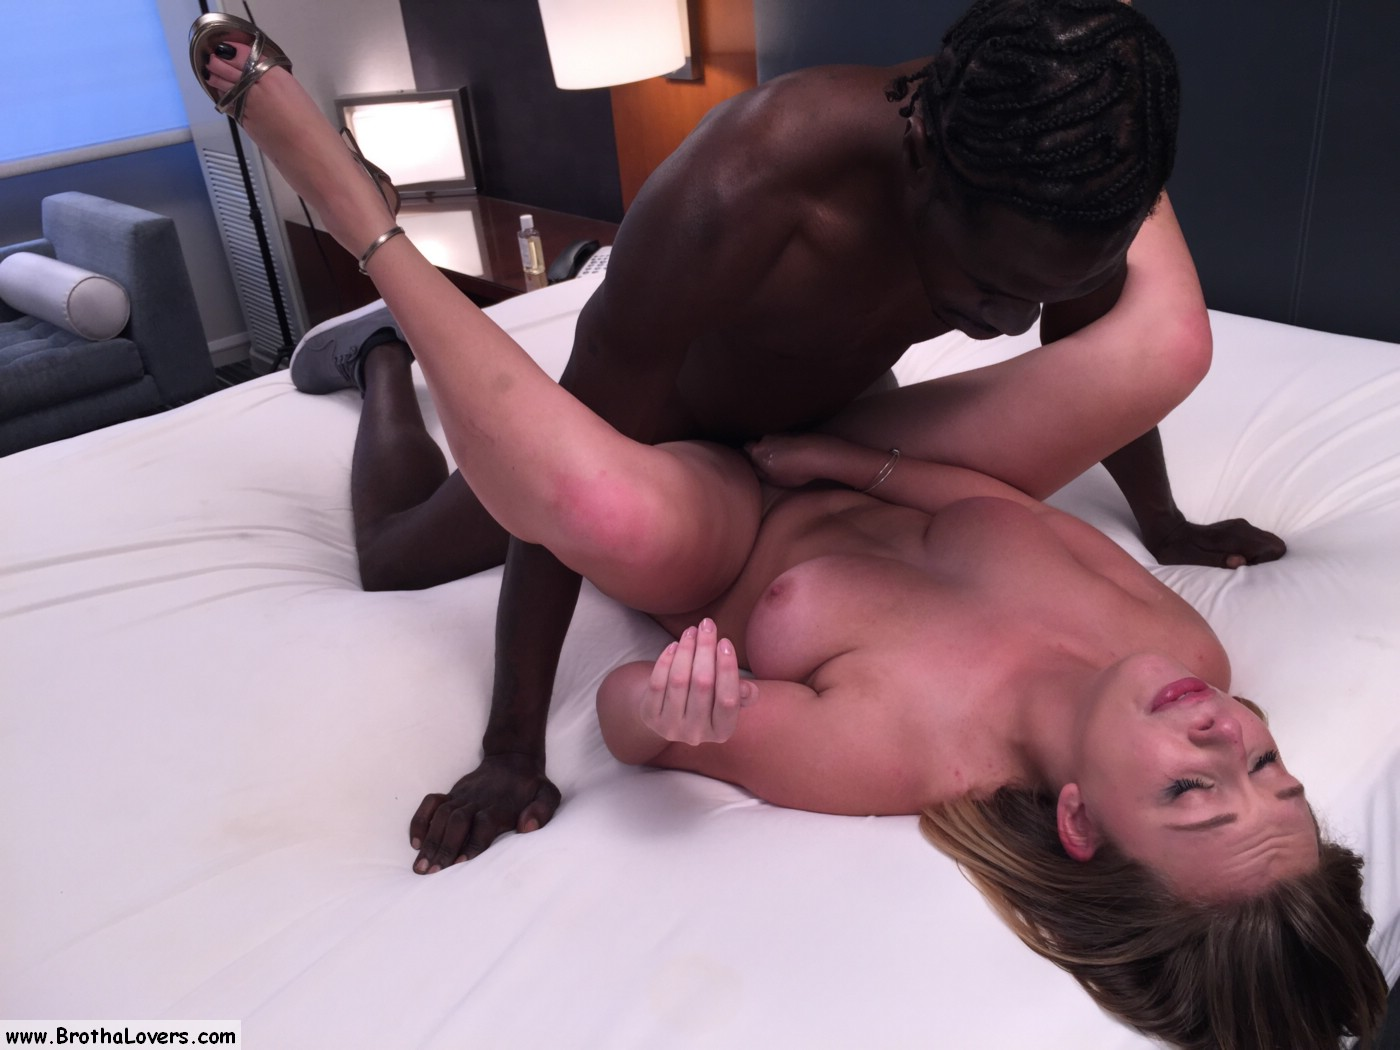 Kate england makes you eat your own cum - 2 part 10